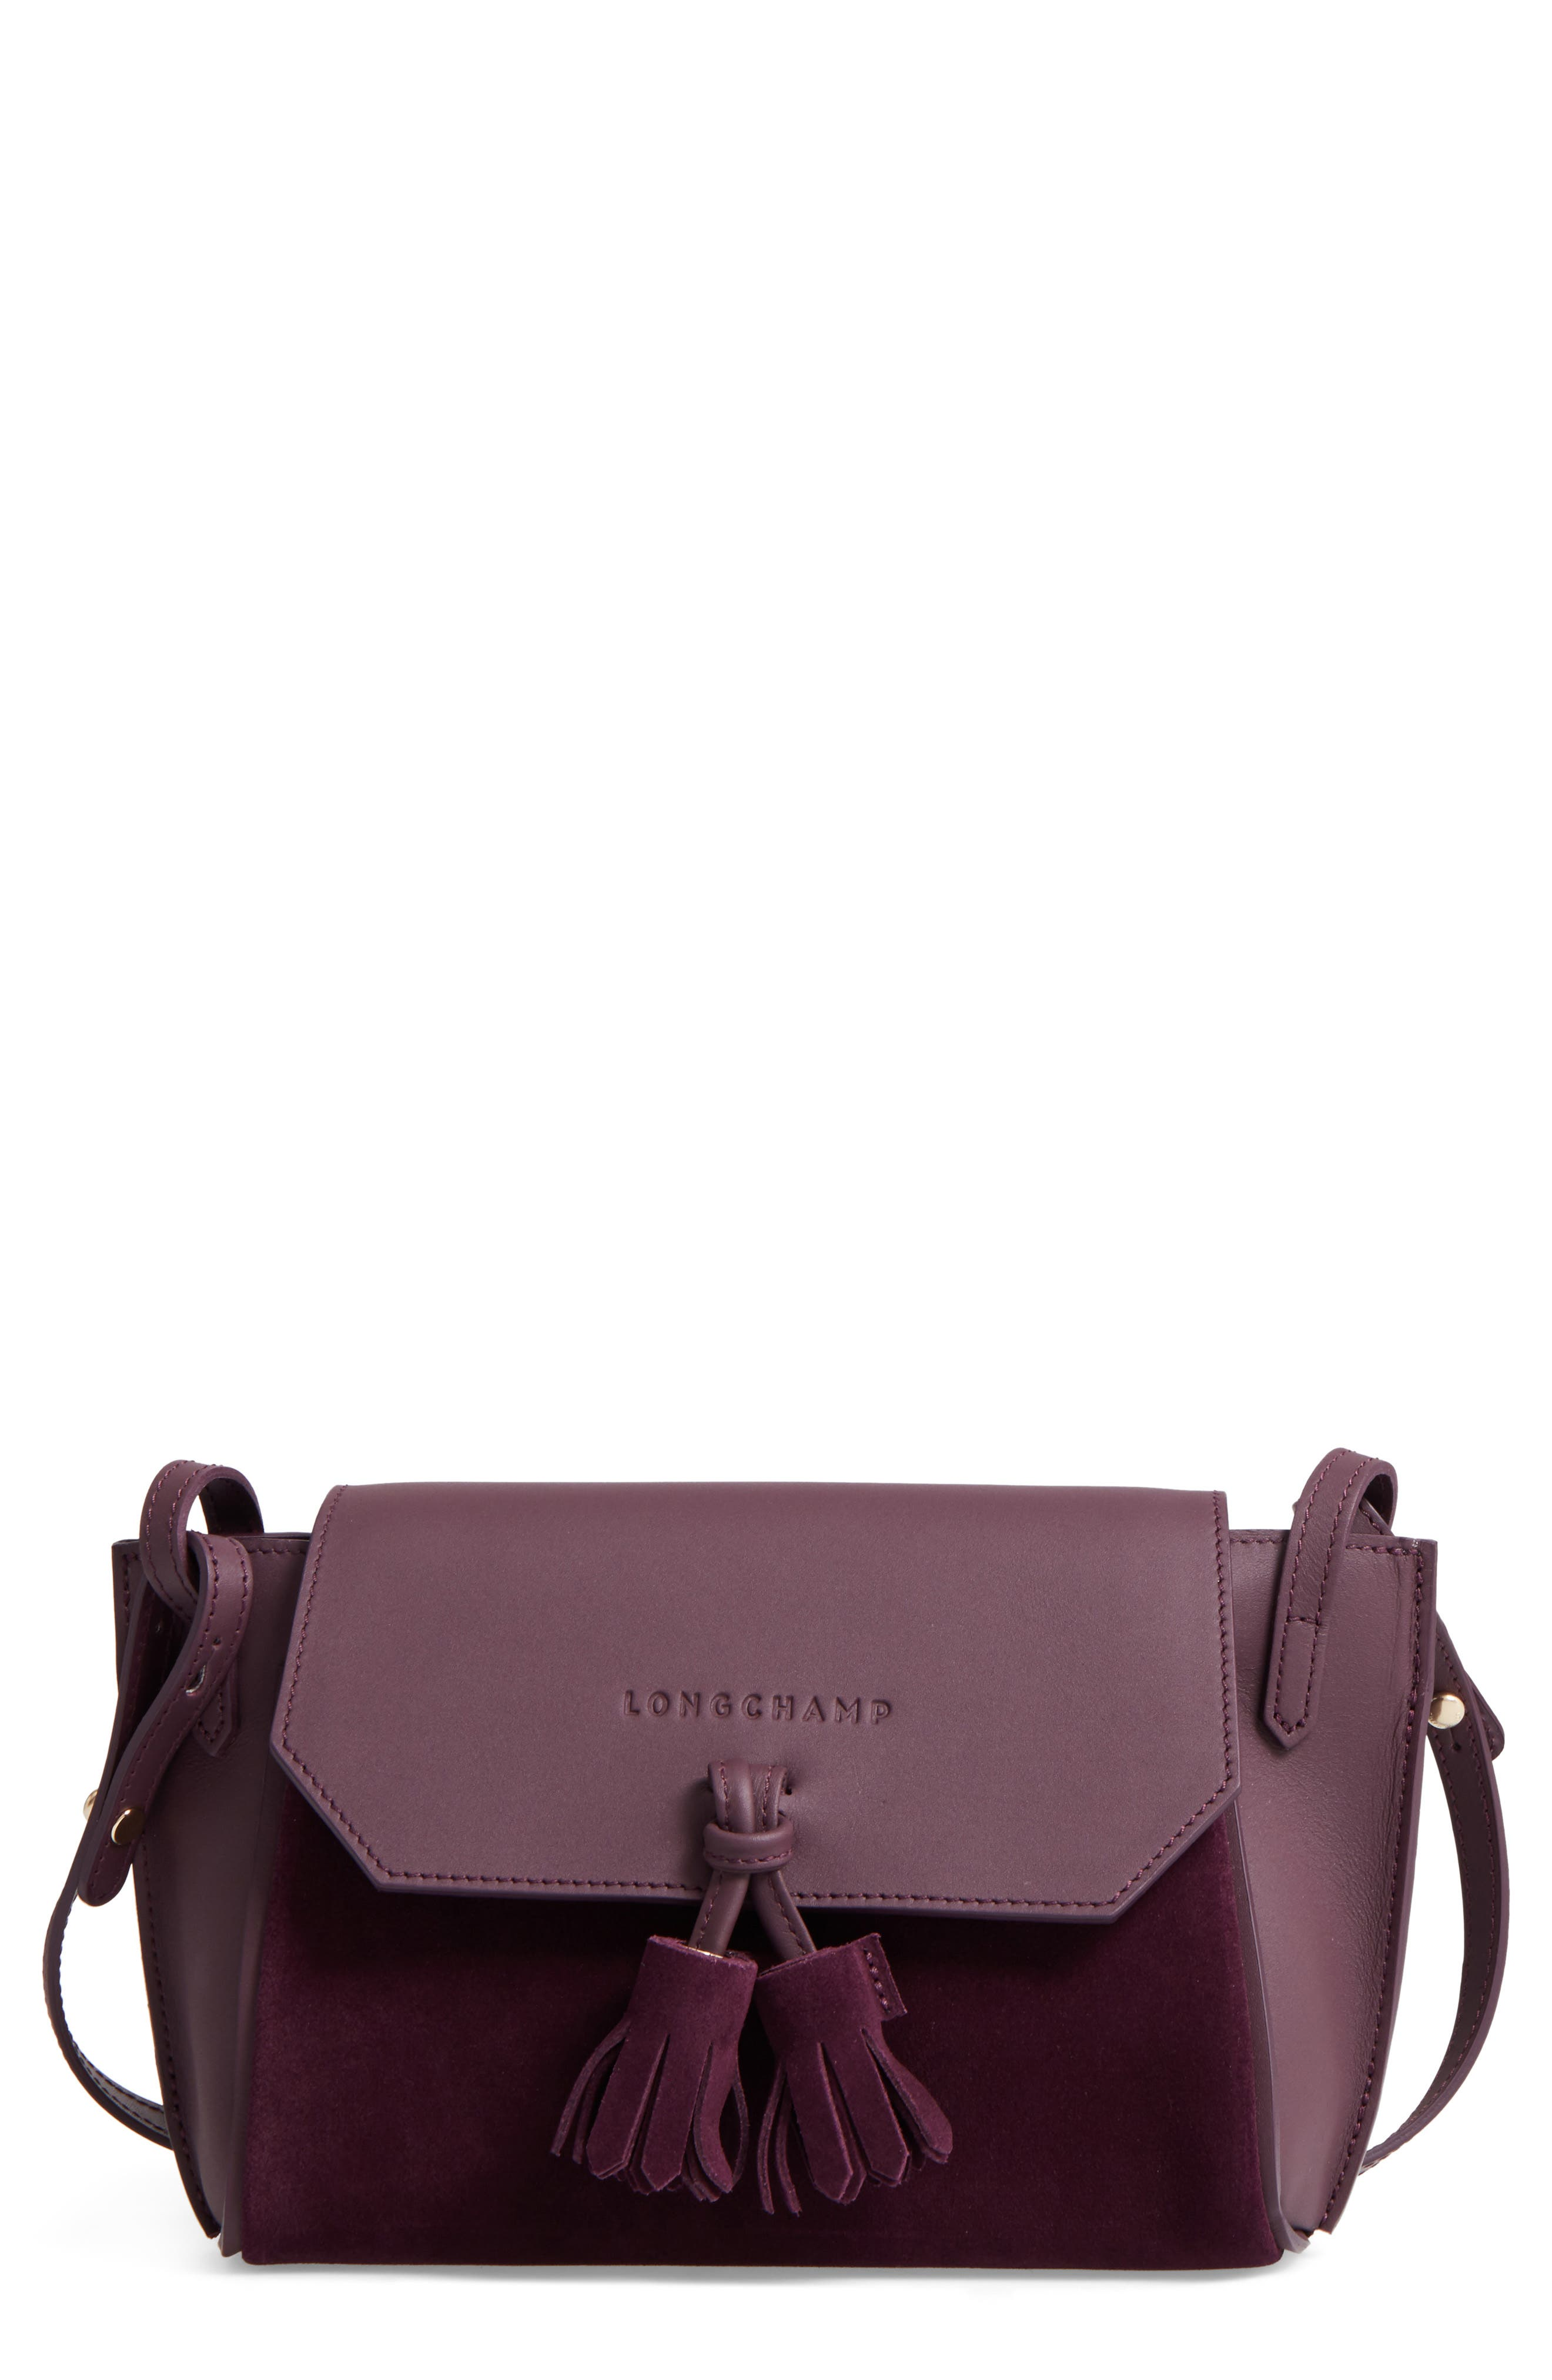 Alternate Image 1 Selected - Longchamp Small Penelope Leather Crossbody Bag